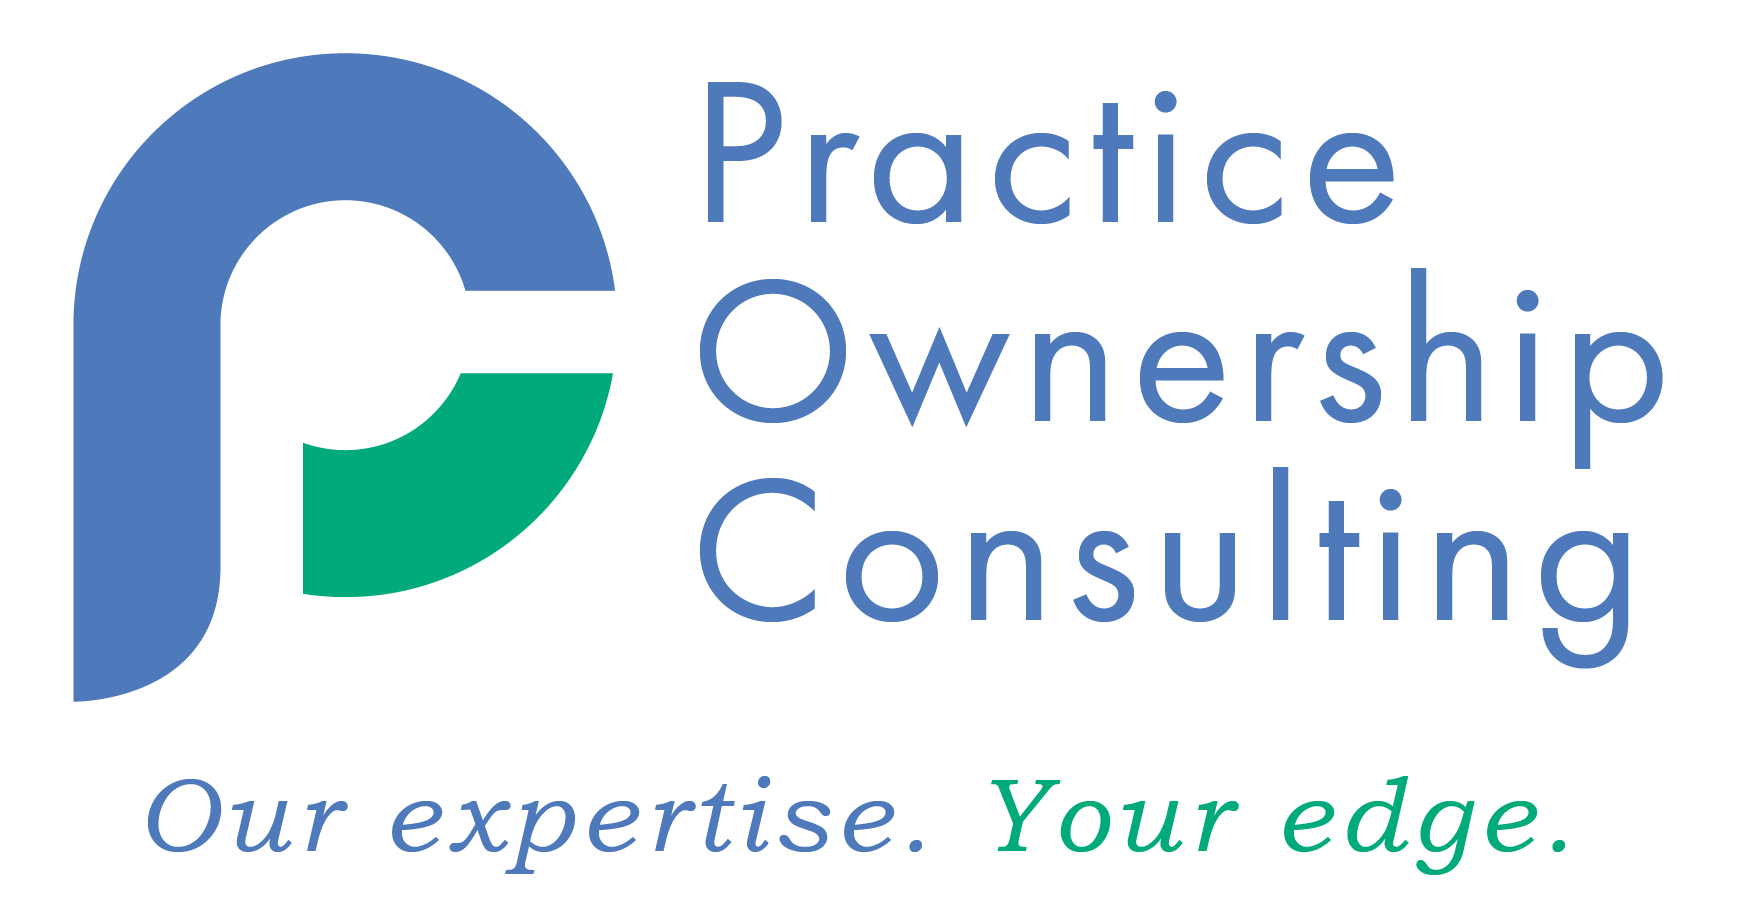 Dental Practice Owners Conference 2019